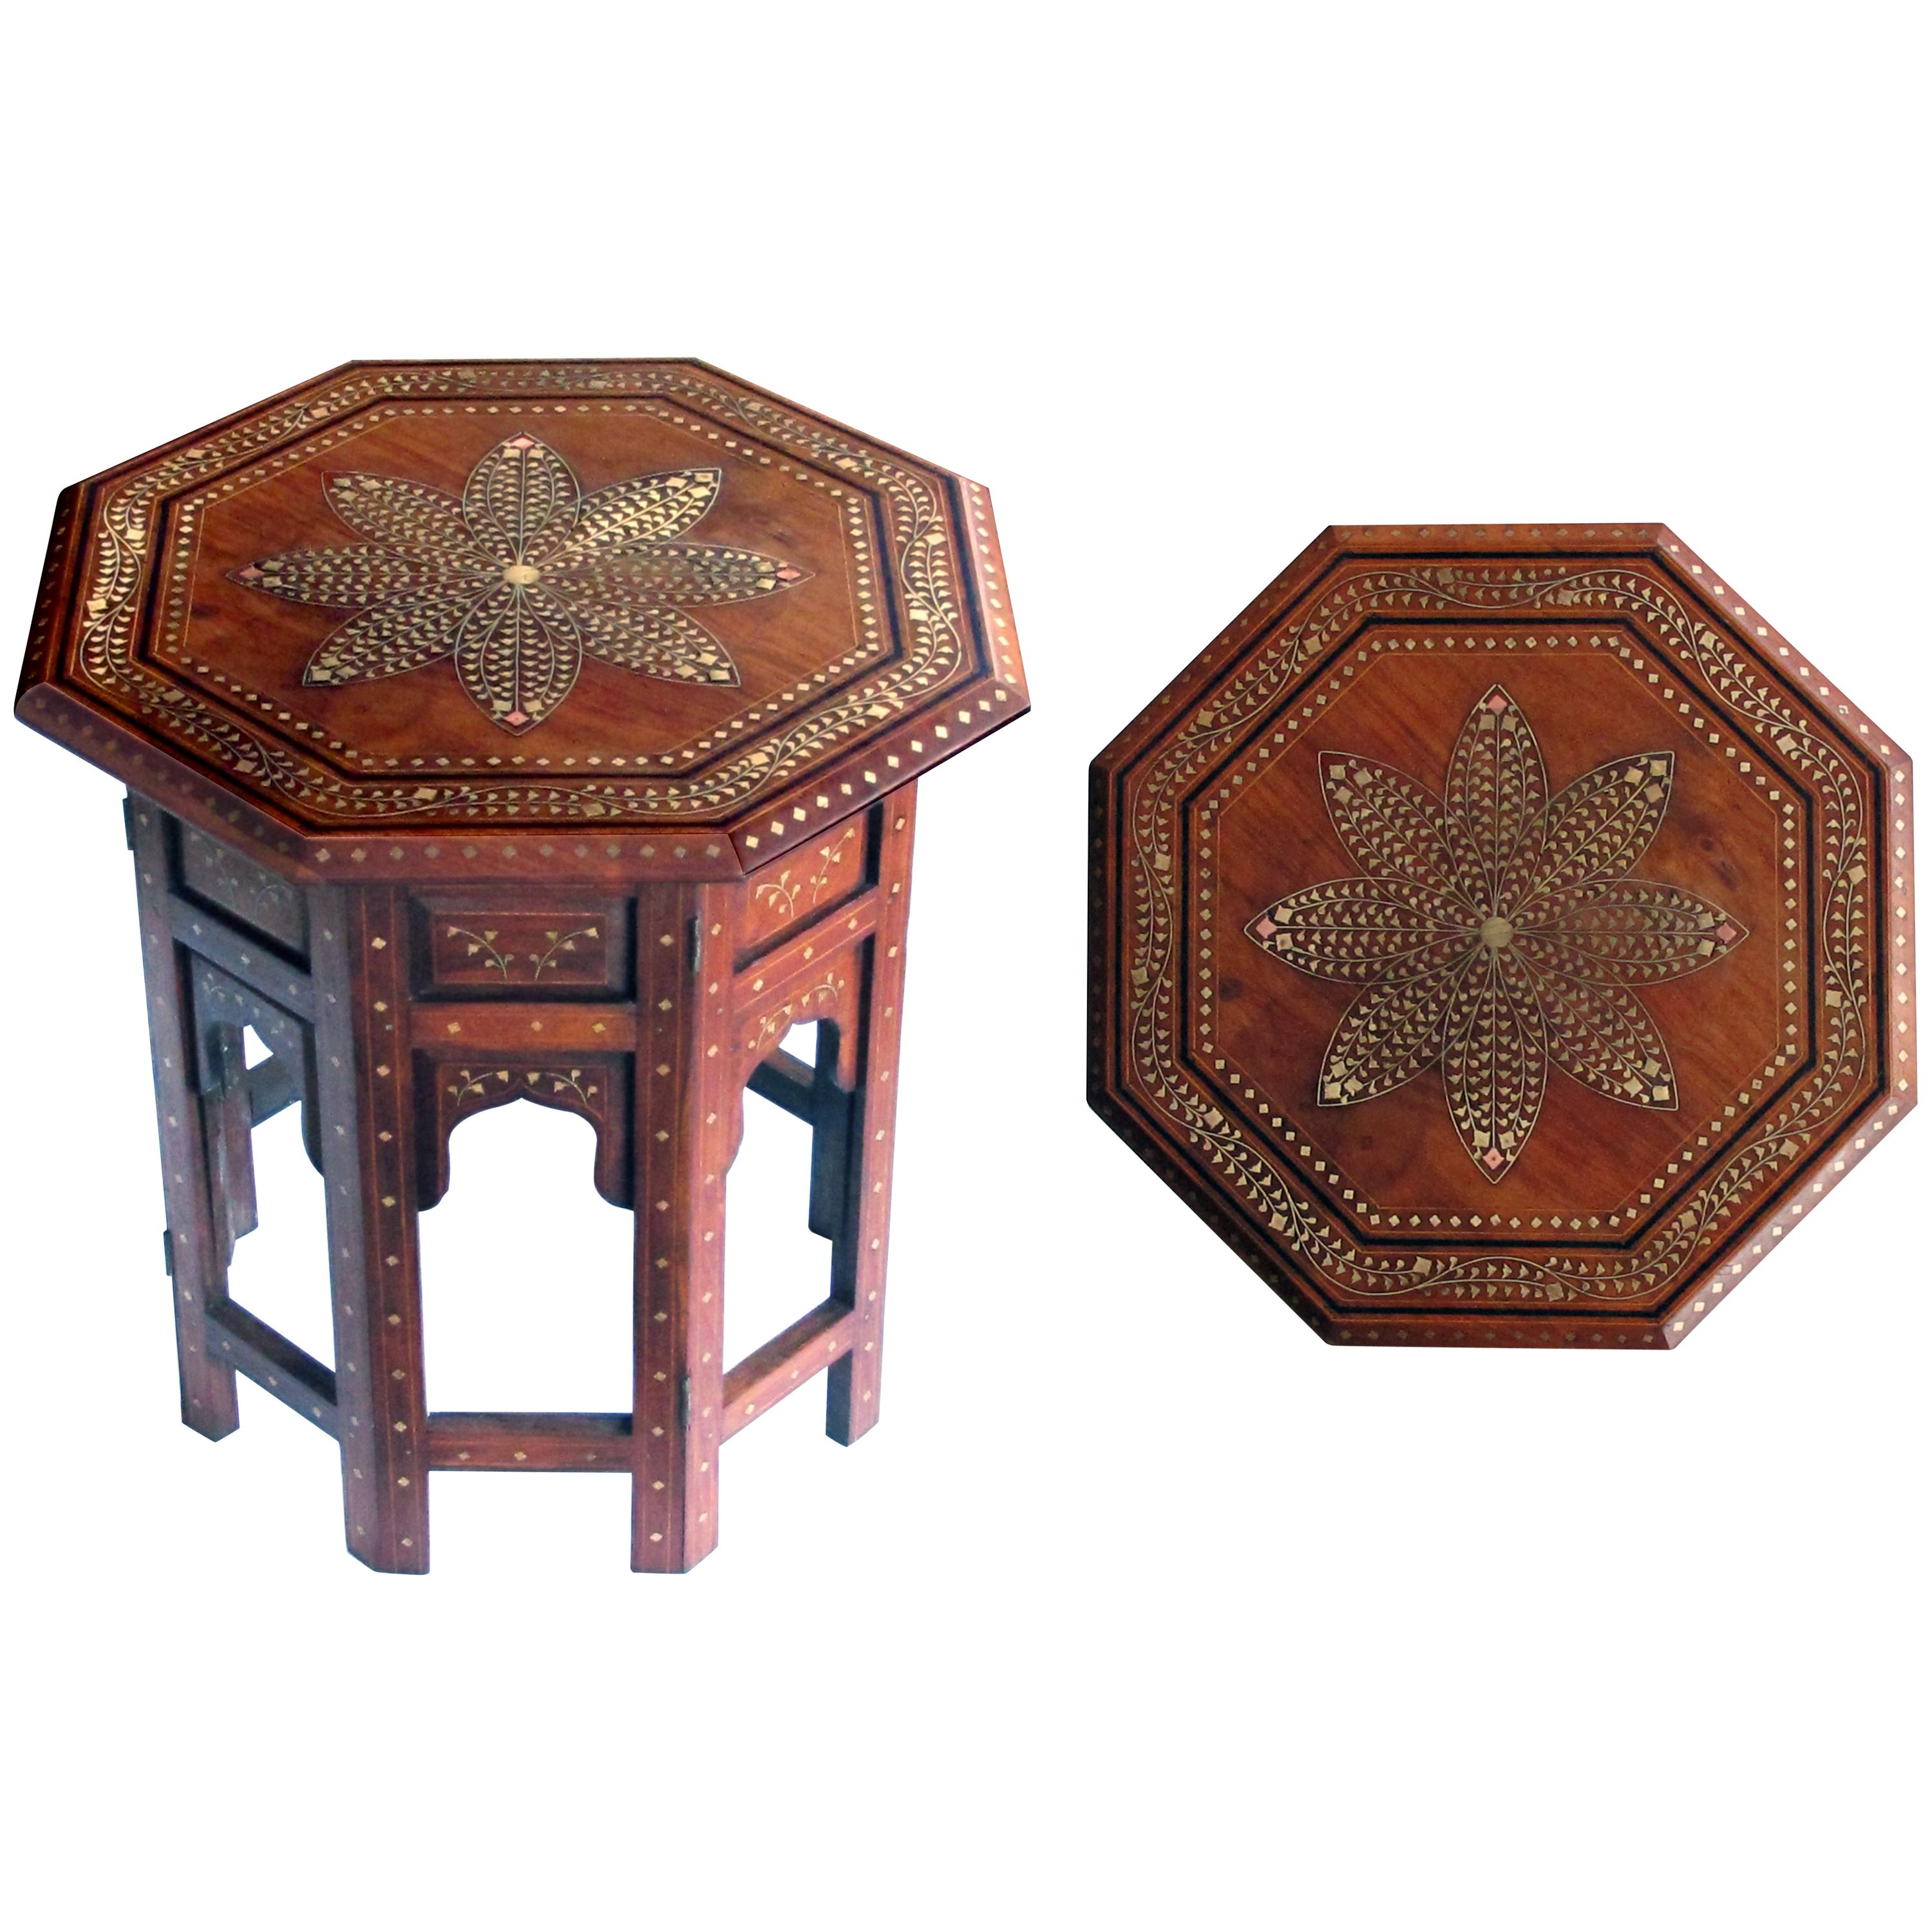 anglo tables for master accent table black acrylic side metal bookshelf pier one imports dining room home interiors catalog green tiffany lamp shade craigslist coffee half circle